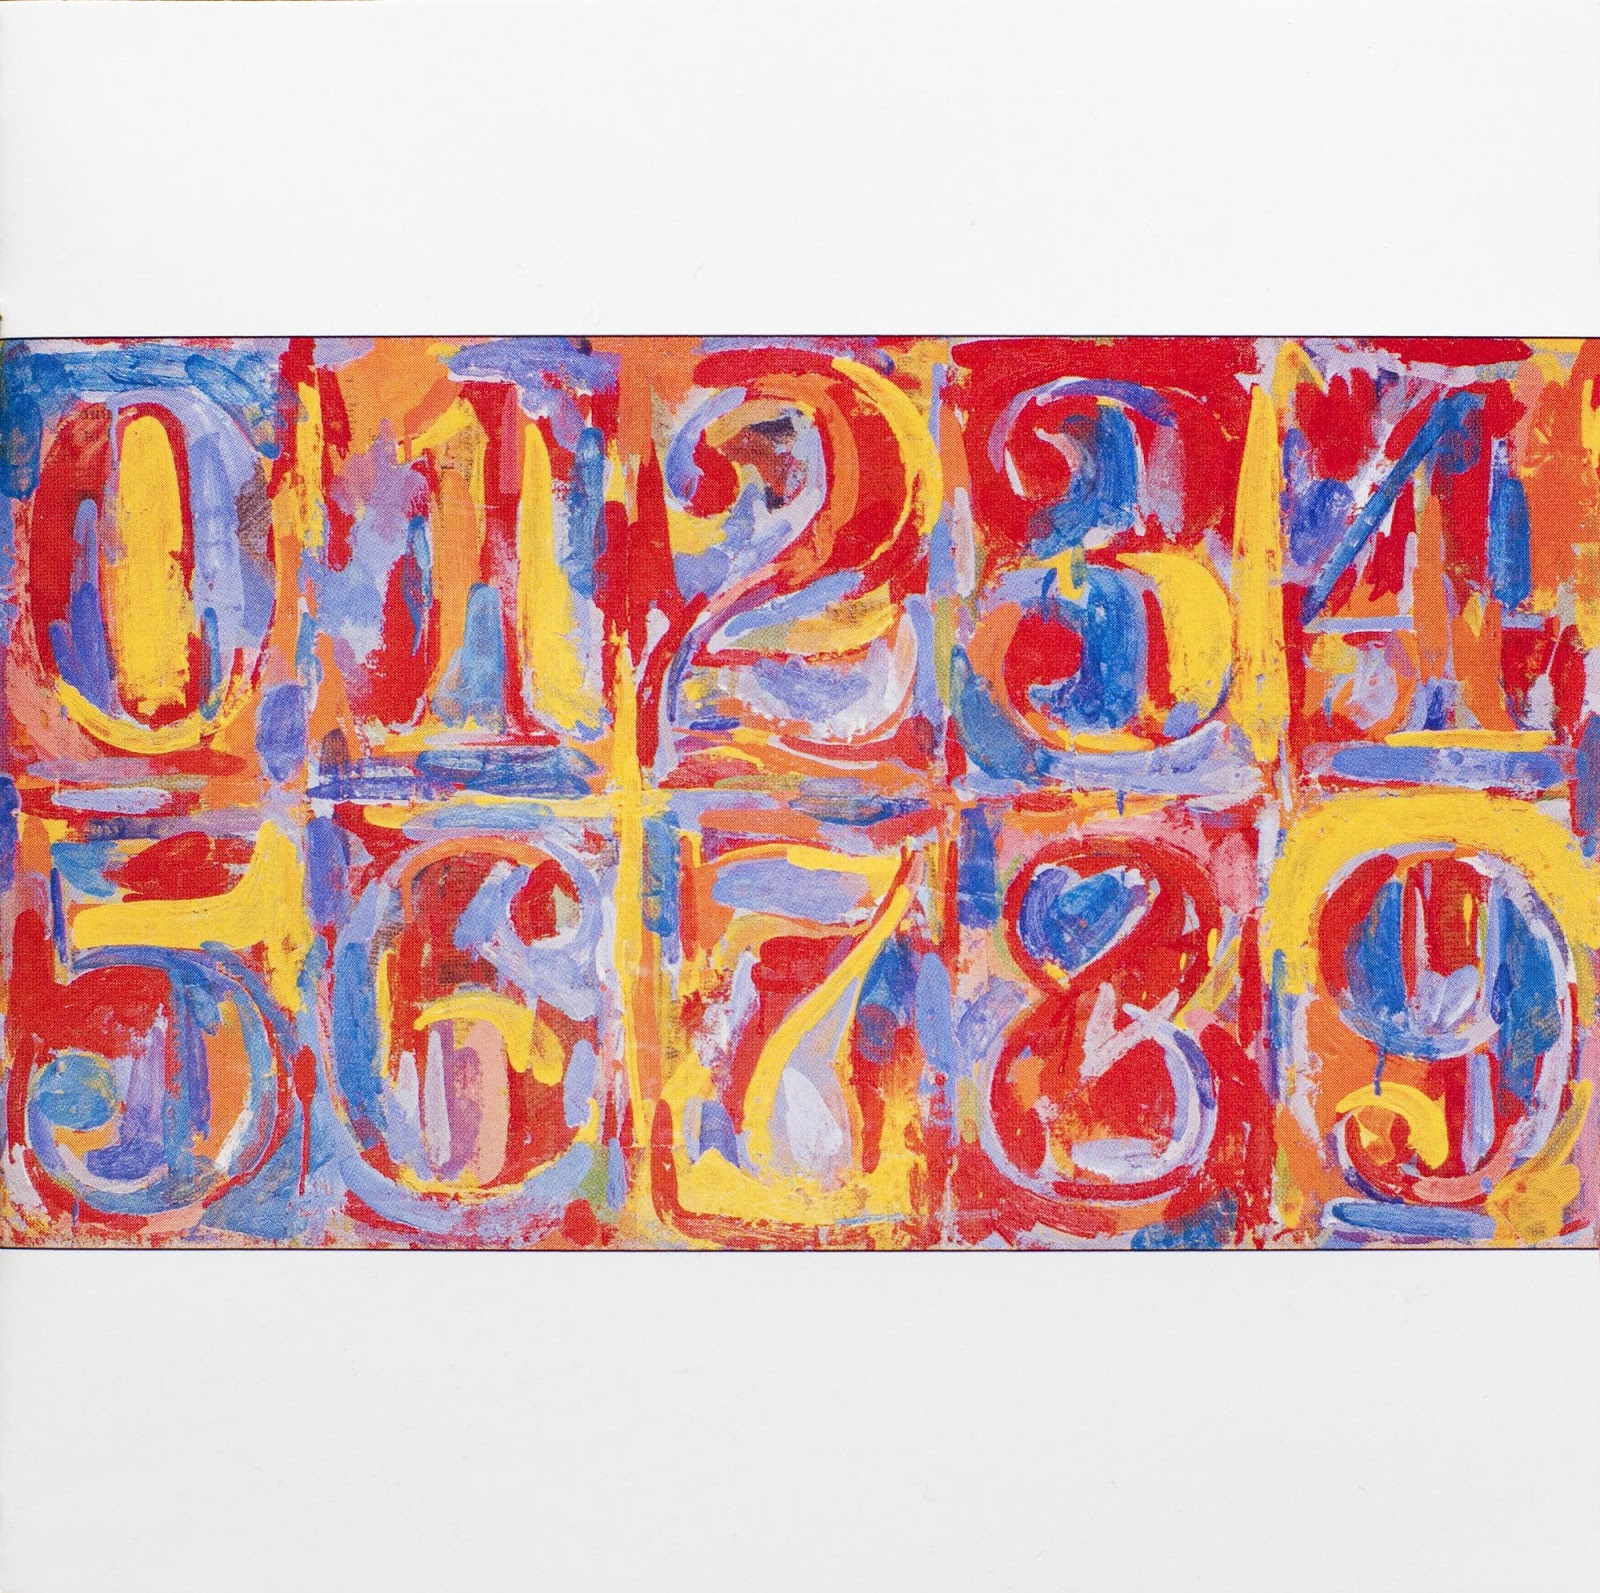 Posted 6th February 2013 by ChoisJasper Johns Numbers White